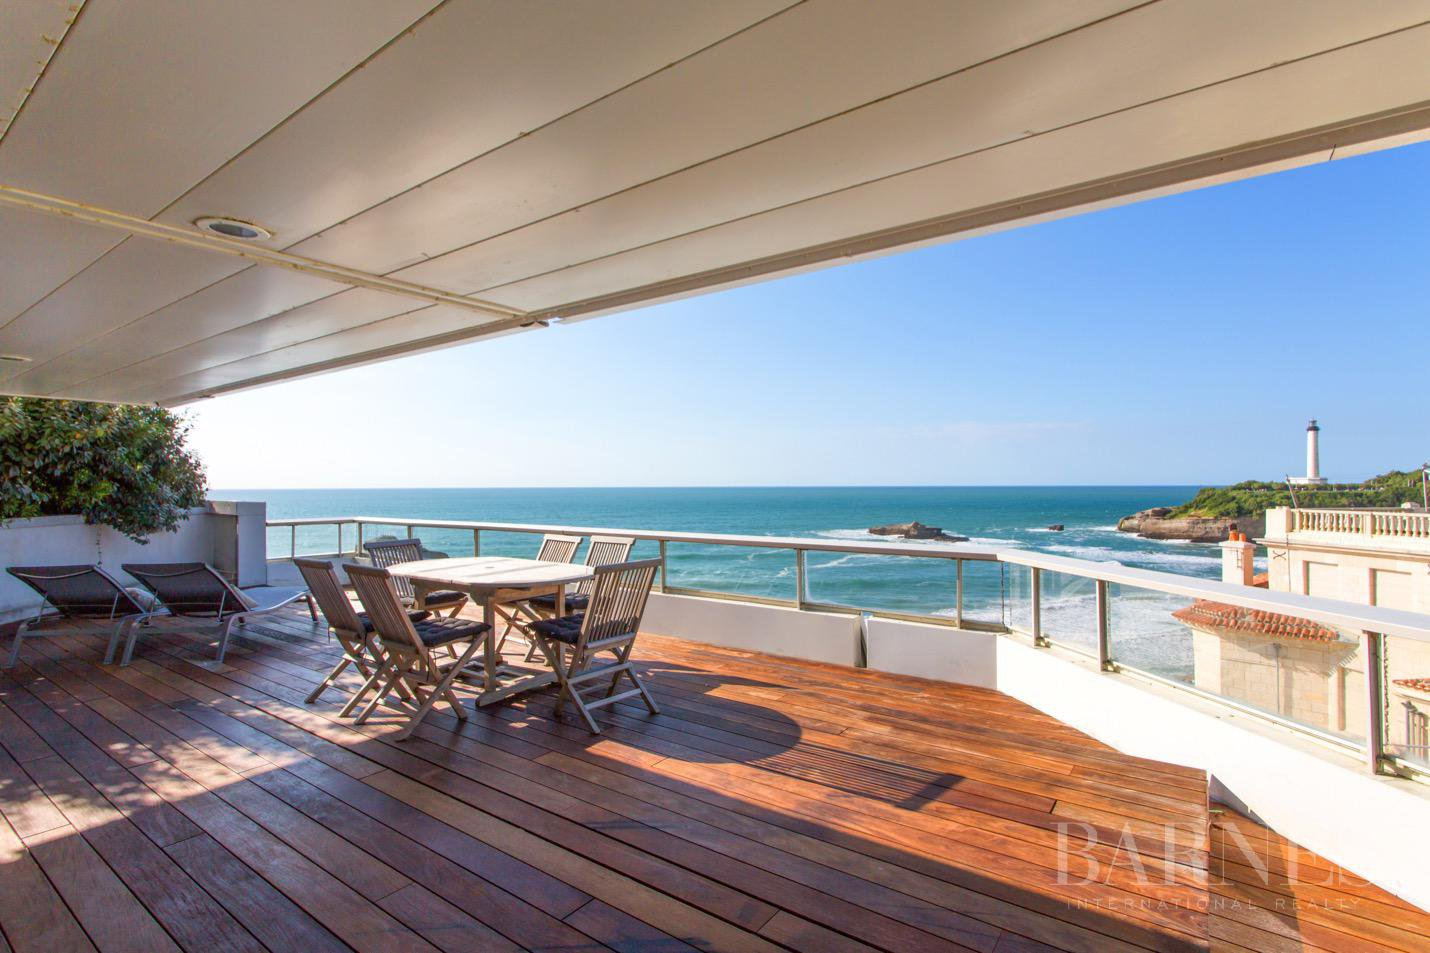 MIRAMAR - APARTMENT WITH TERRACE, OCEAN AND LIGHT HOUSE VIEW picture 6